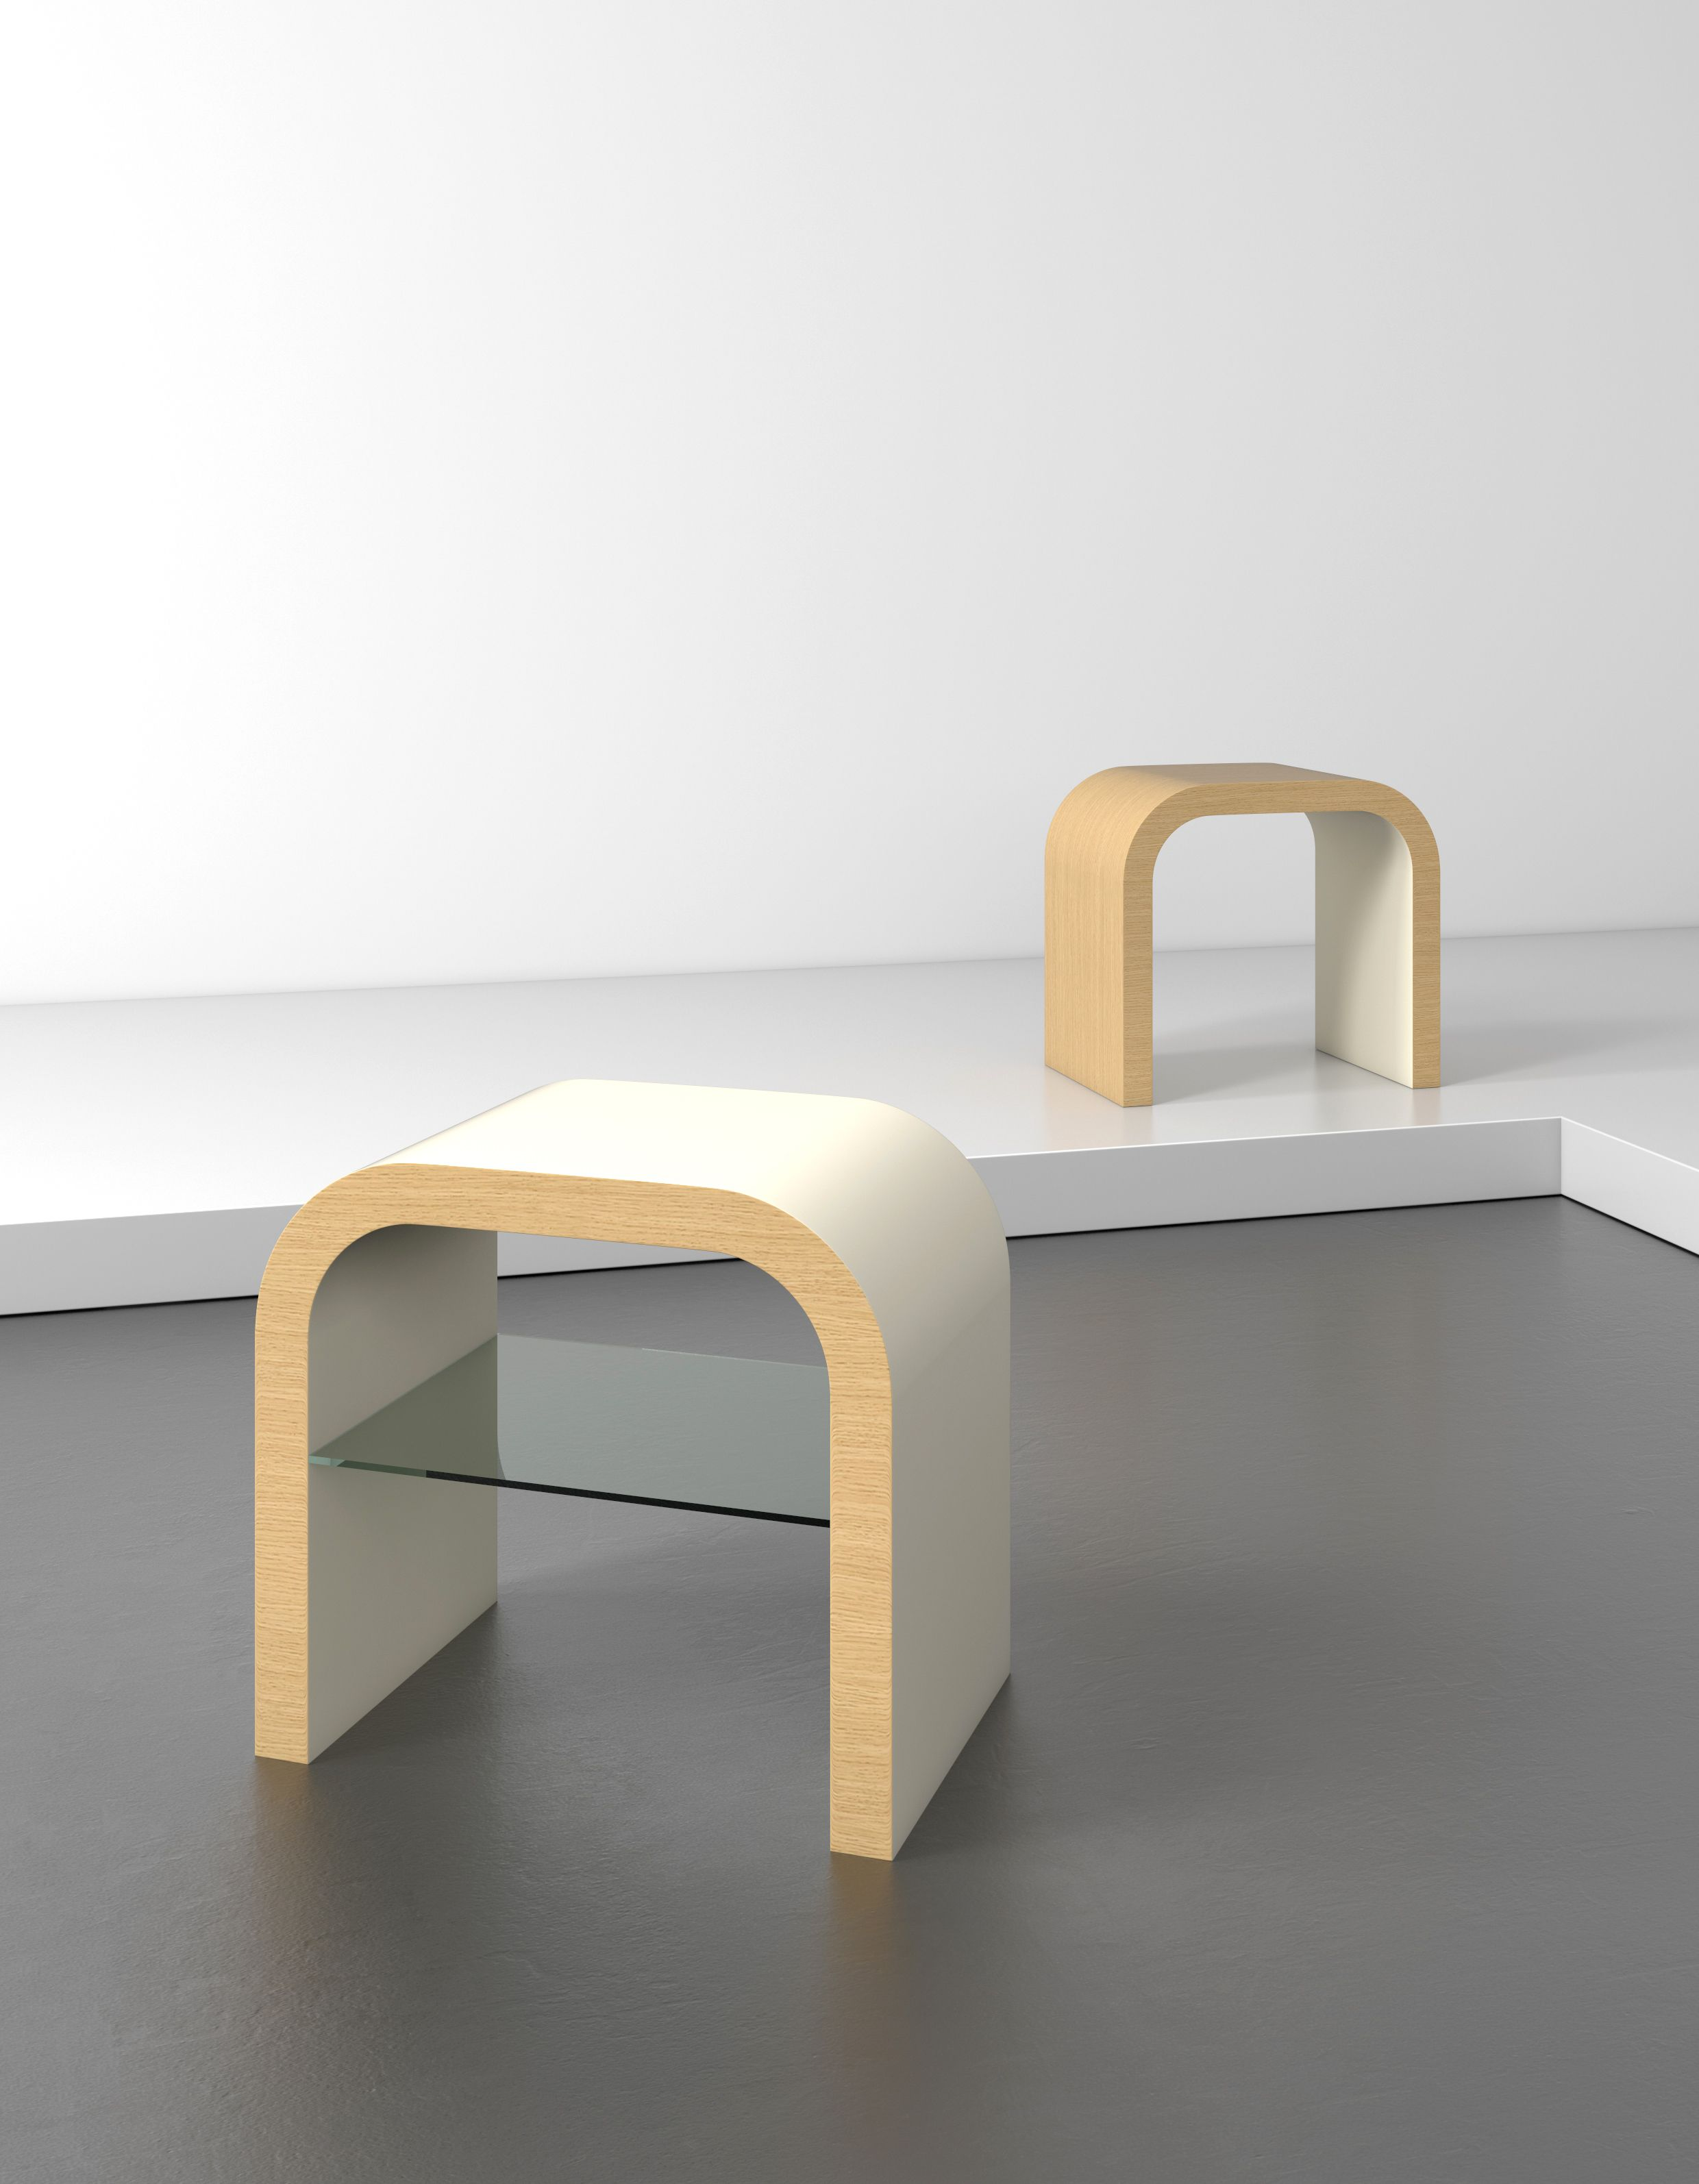 The U Shape Lamp in cream gloss and natural oak The name should